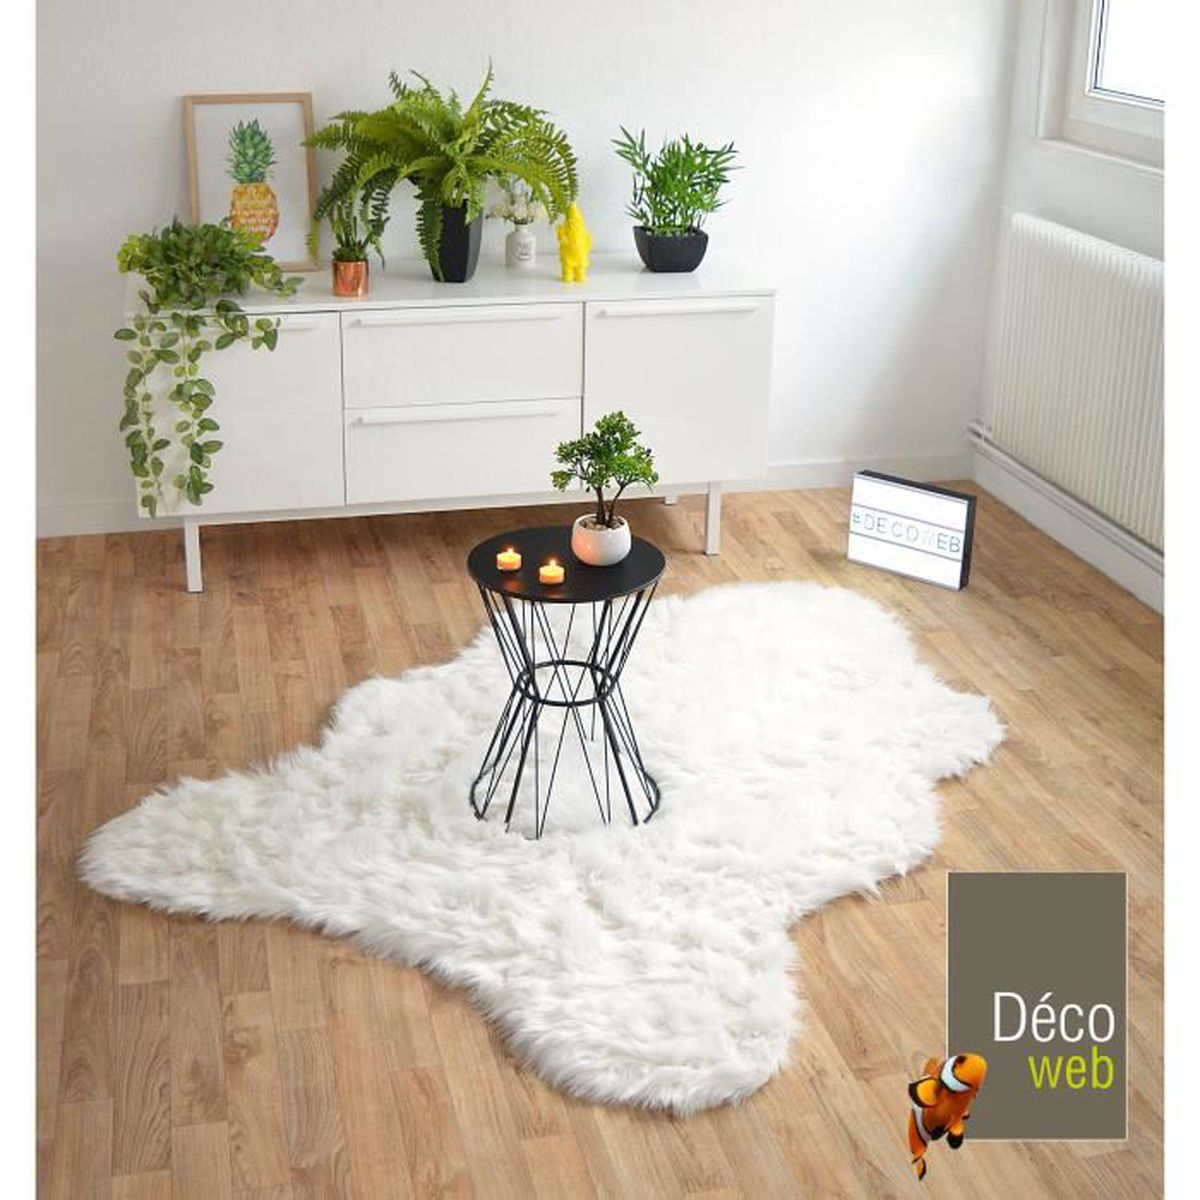 tapis peau de bete achat vente tapis peau de bete pas cher cdiscount. Black Bedroom Furniture Sets. Home Design Ideas